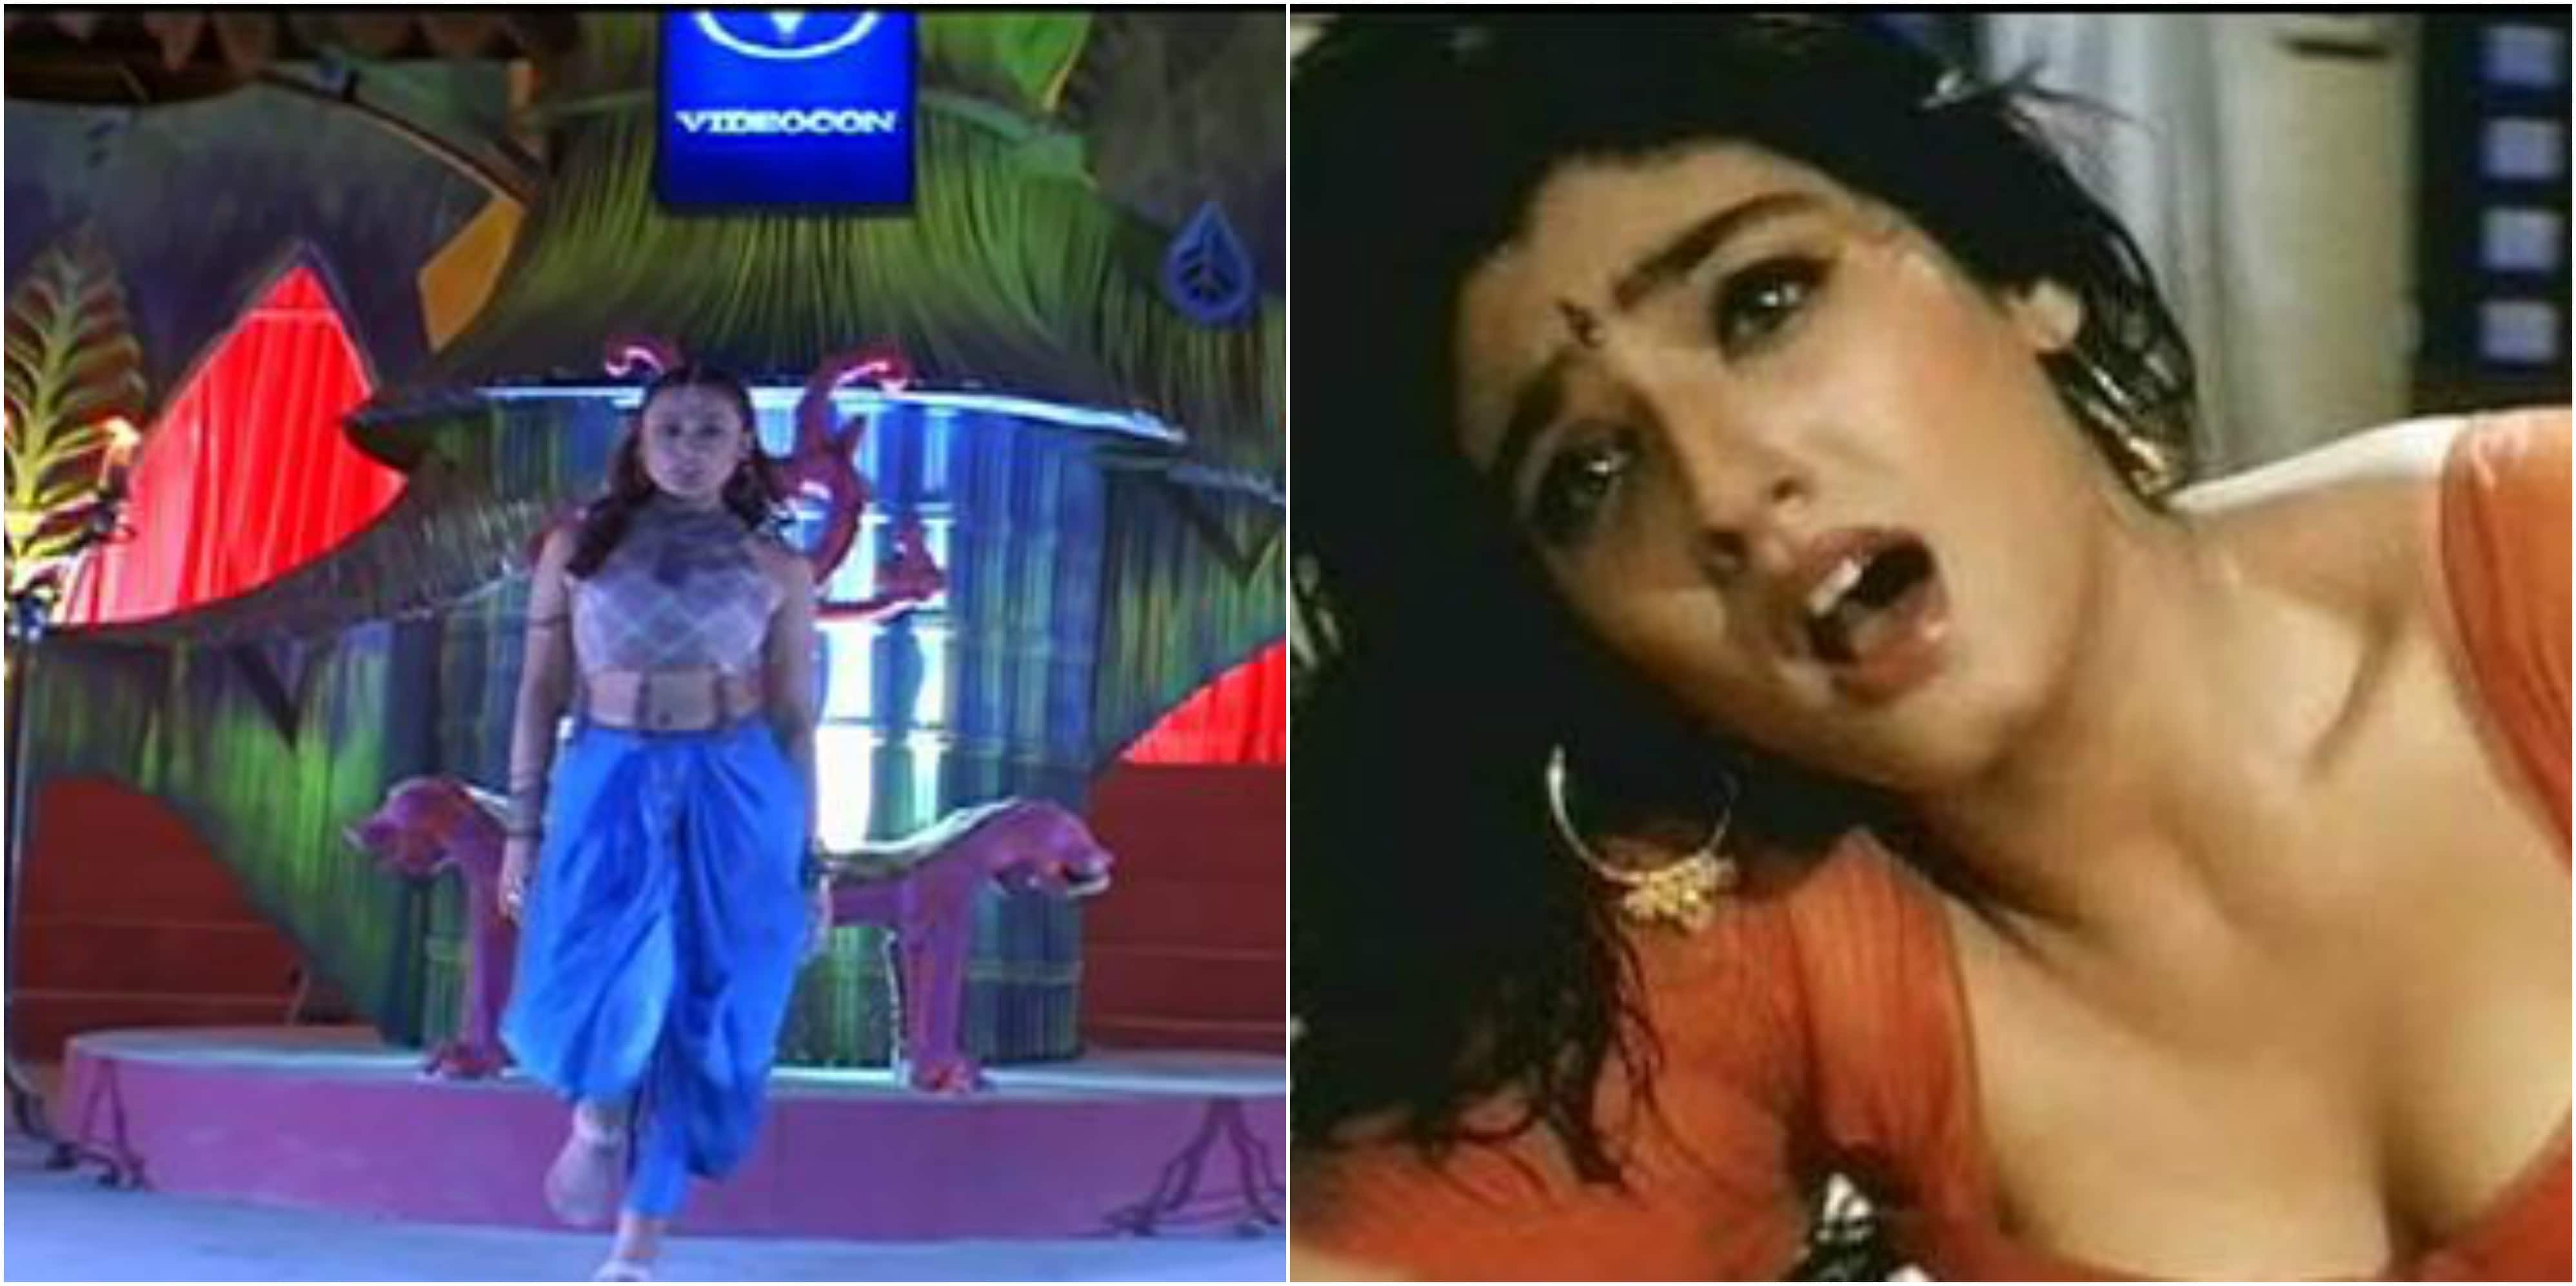 Here Are All The 'Hera Pheris' That Happened With The Casting Of The Film Hera Pheri